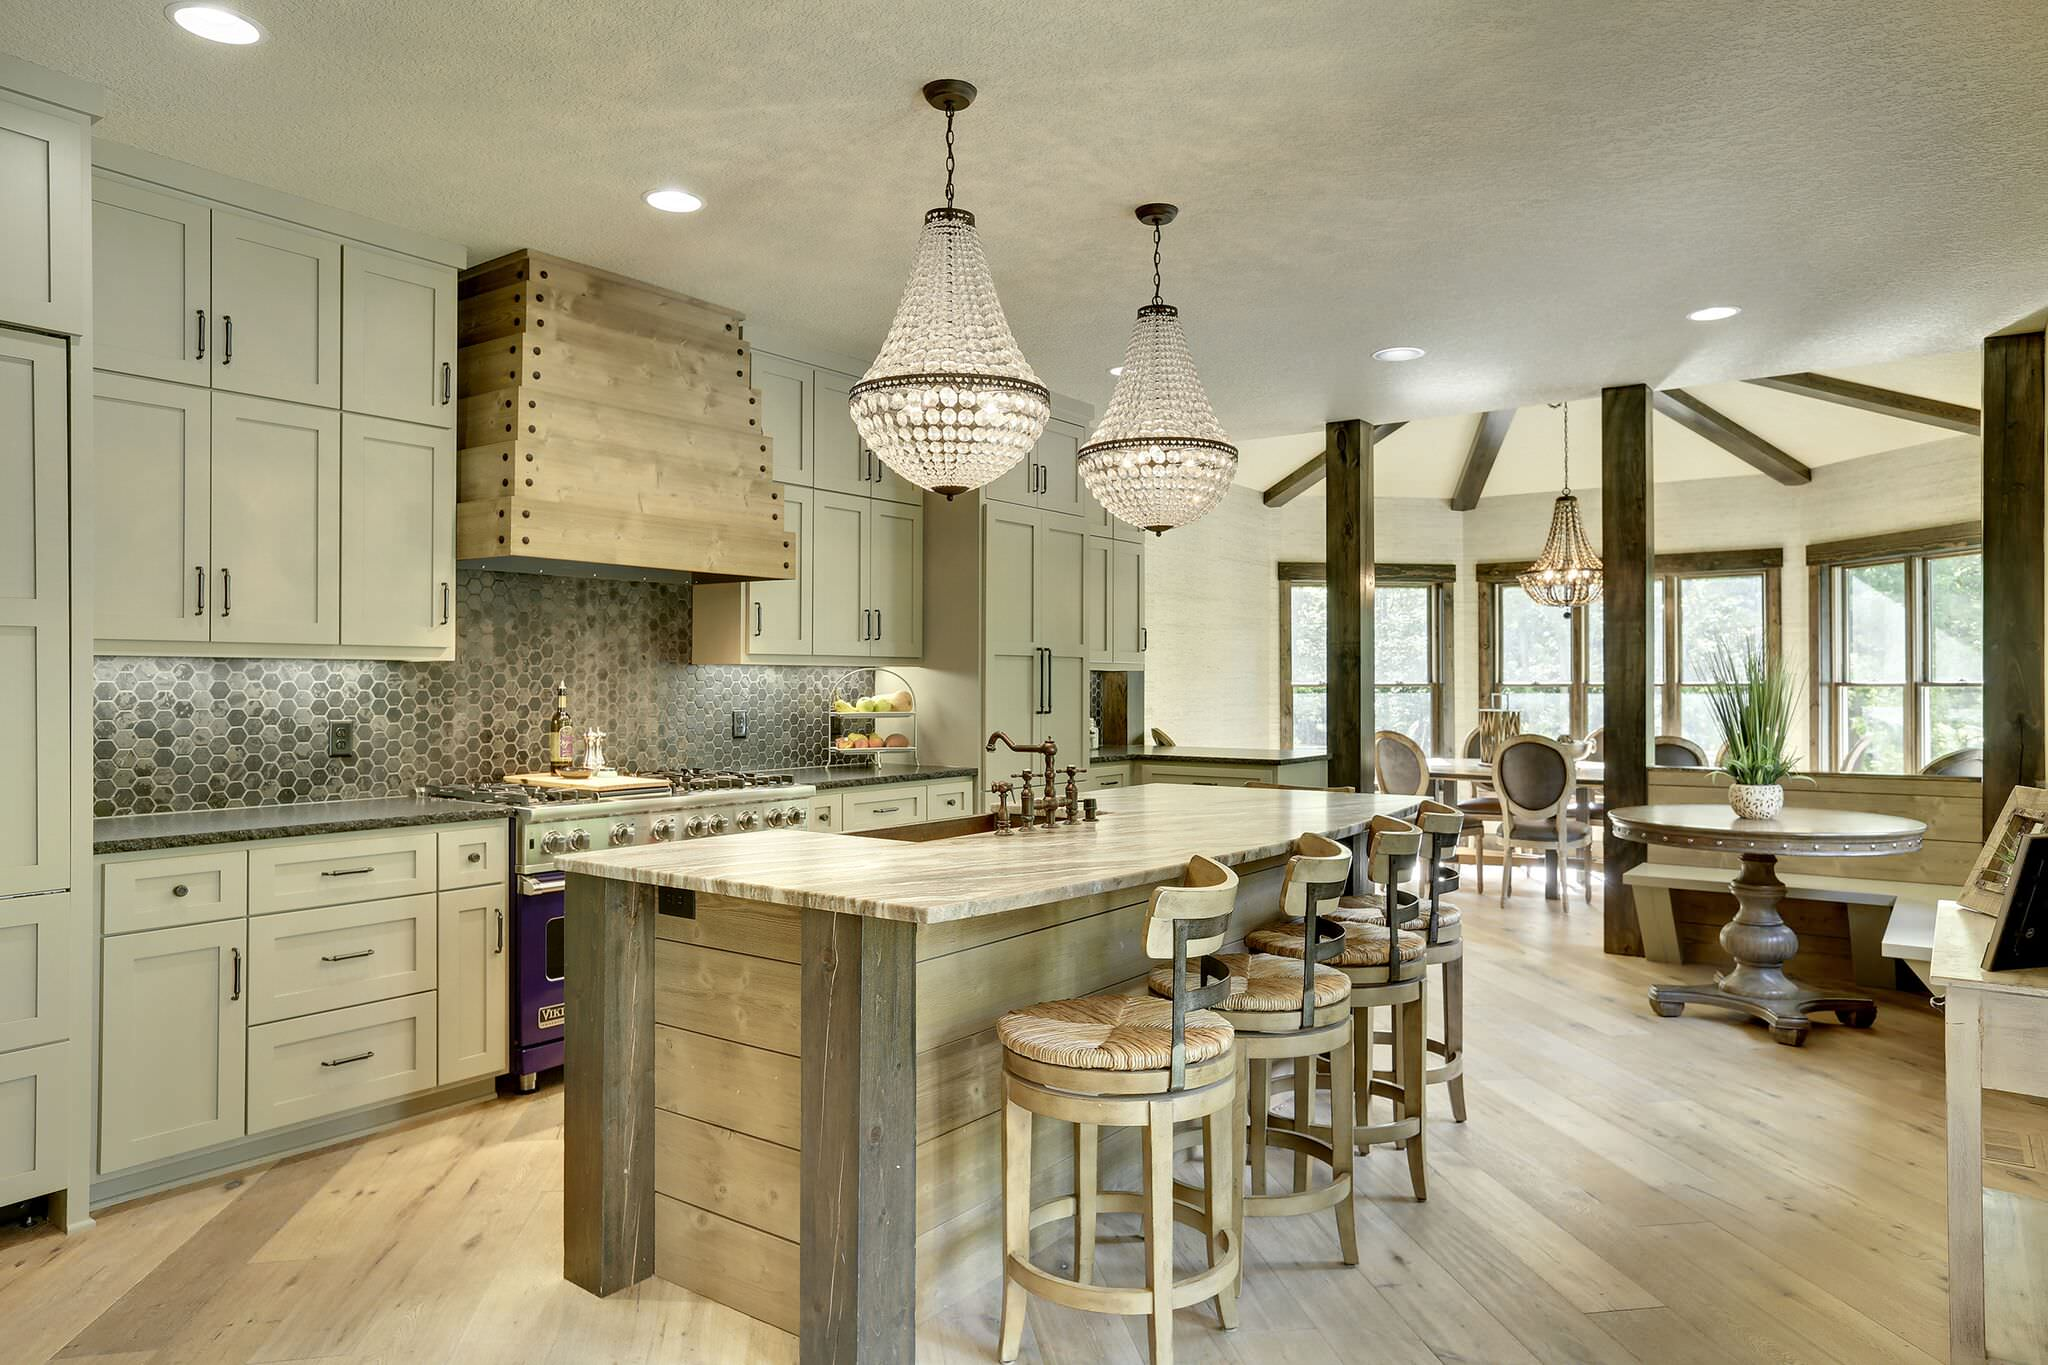 rustic kitchen ideas 15 inspirational rustic kitchen designs you will adore 13035